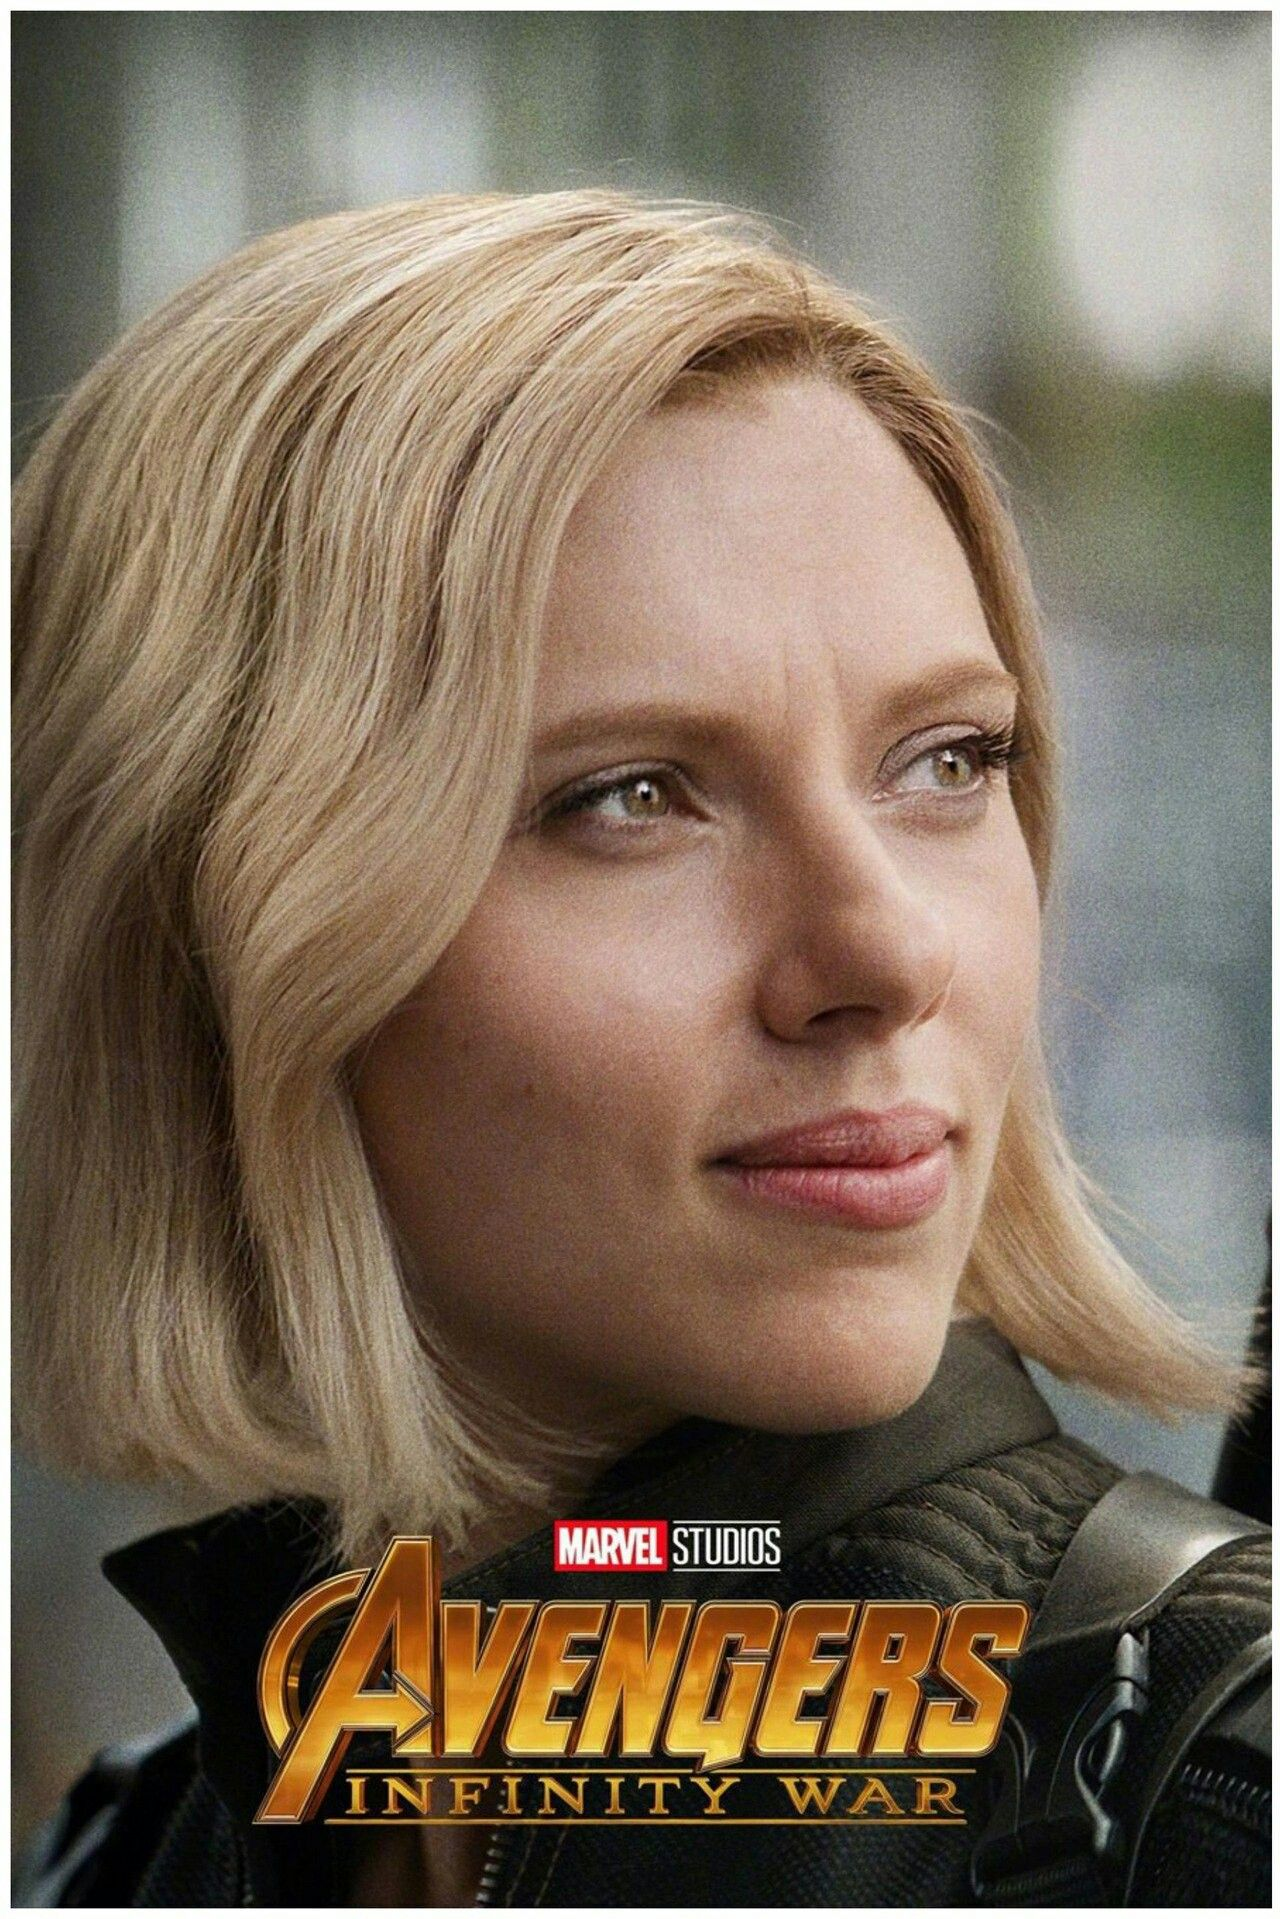 I Love The New Look For Black Widow In Avengers Infinity War